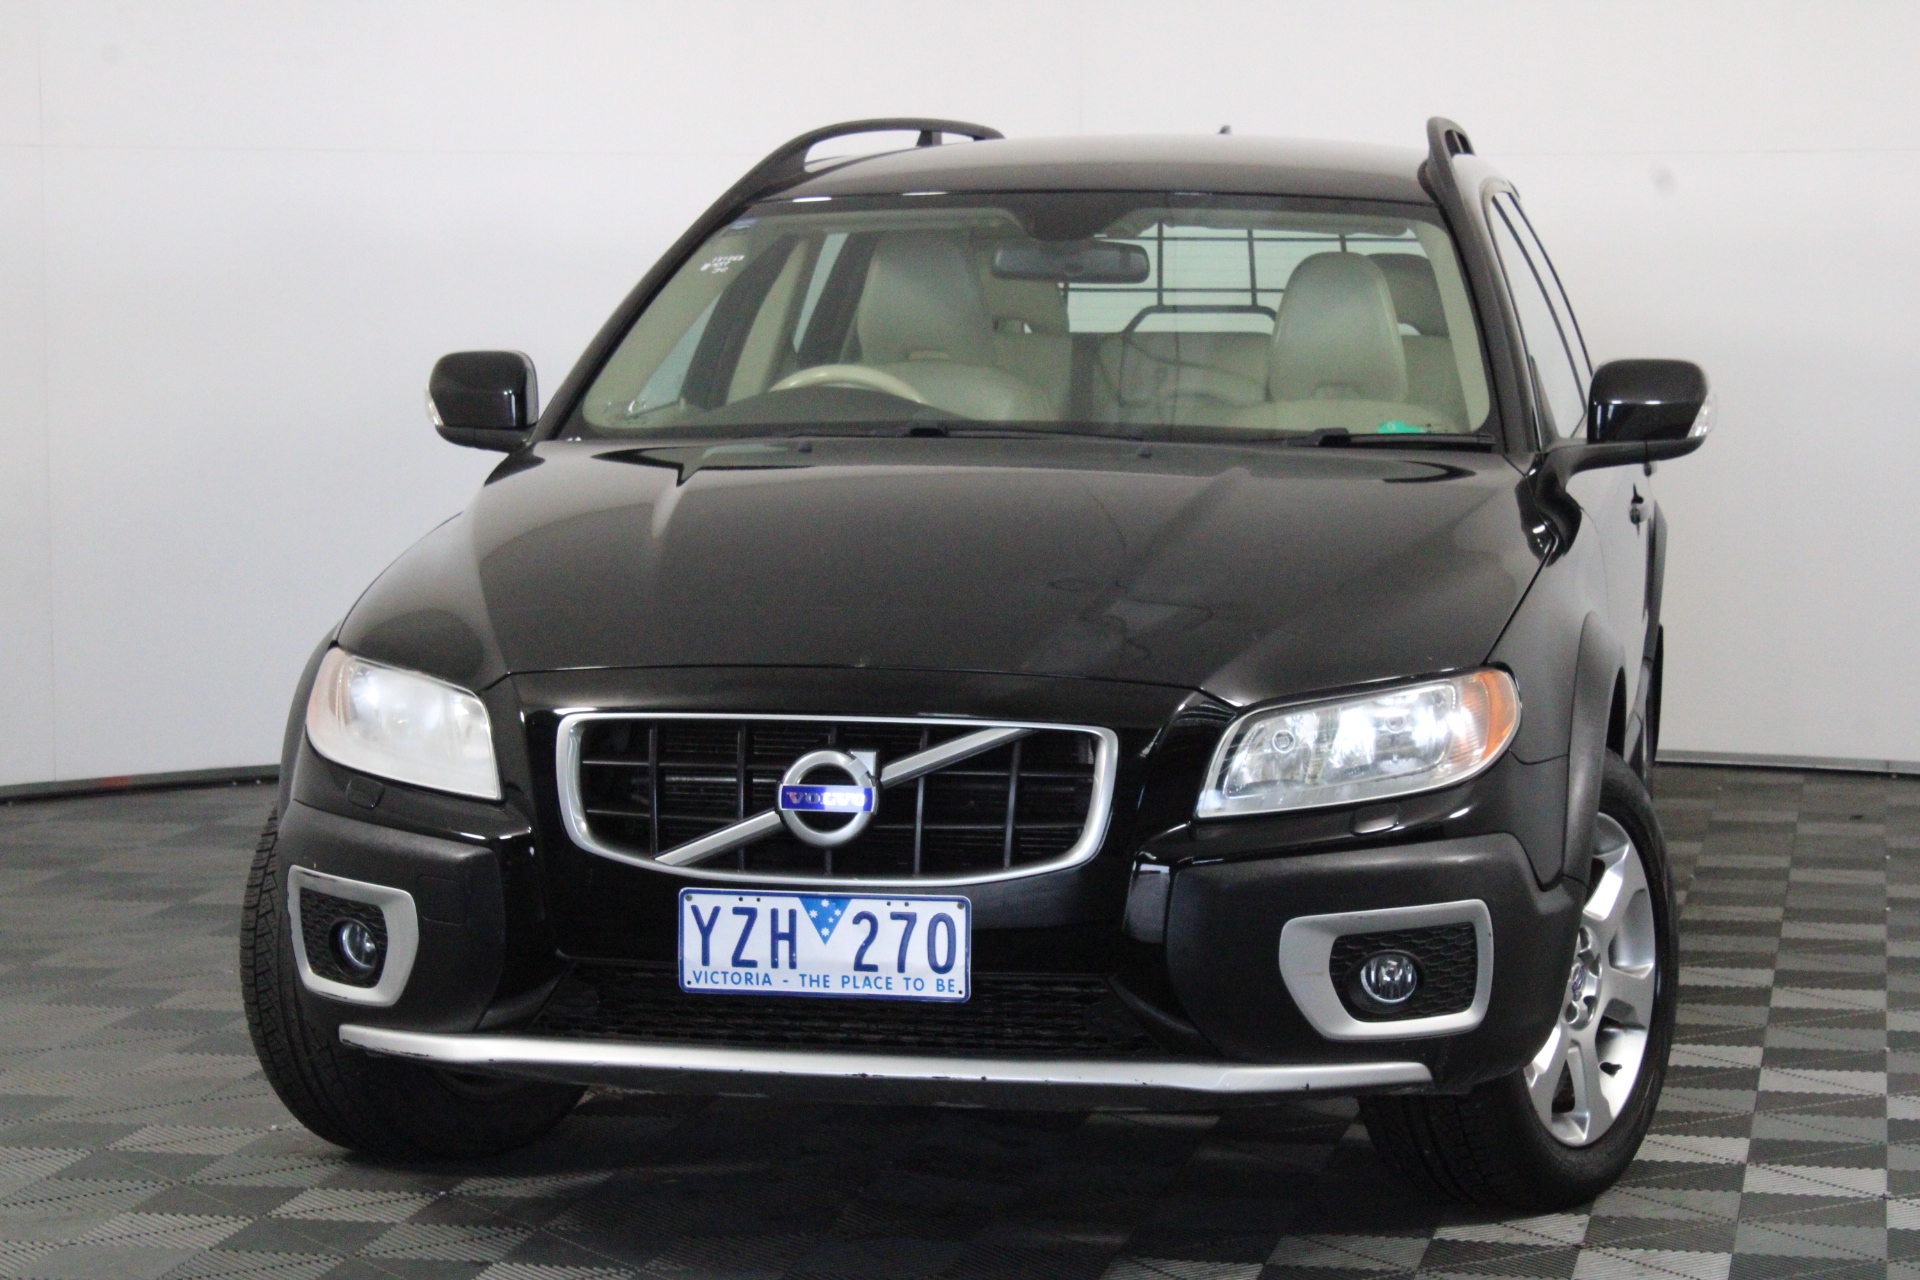 2010 Volvo XC70 D5 Turbo Diesel Automatic Wagon